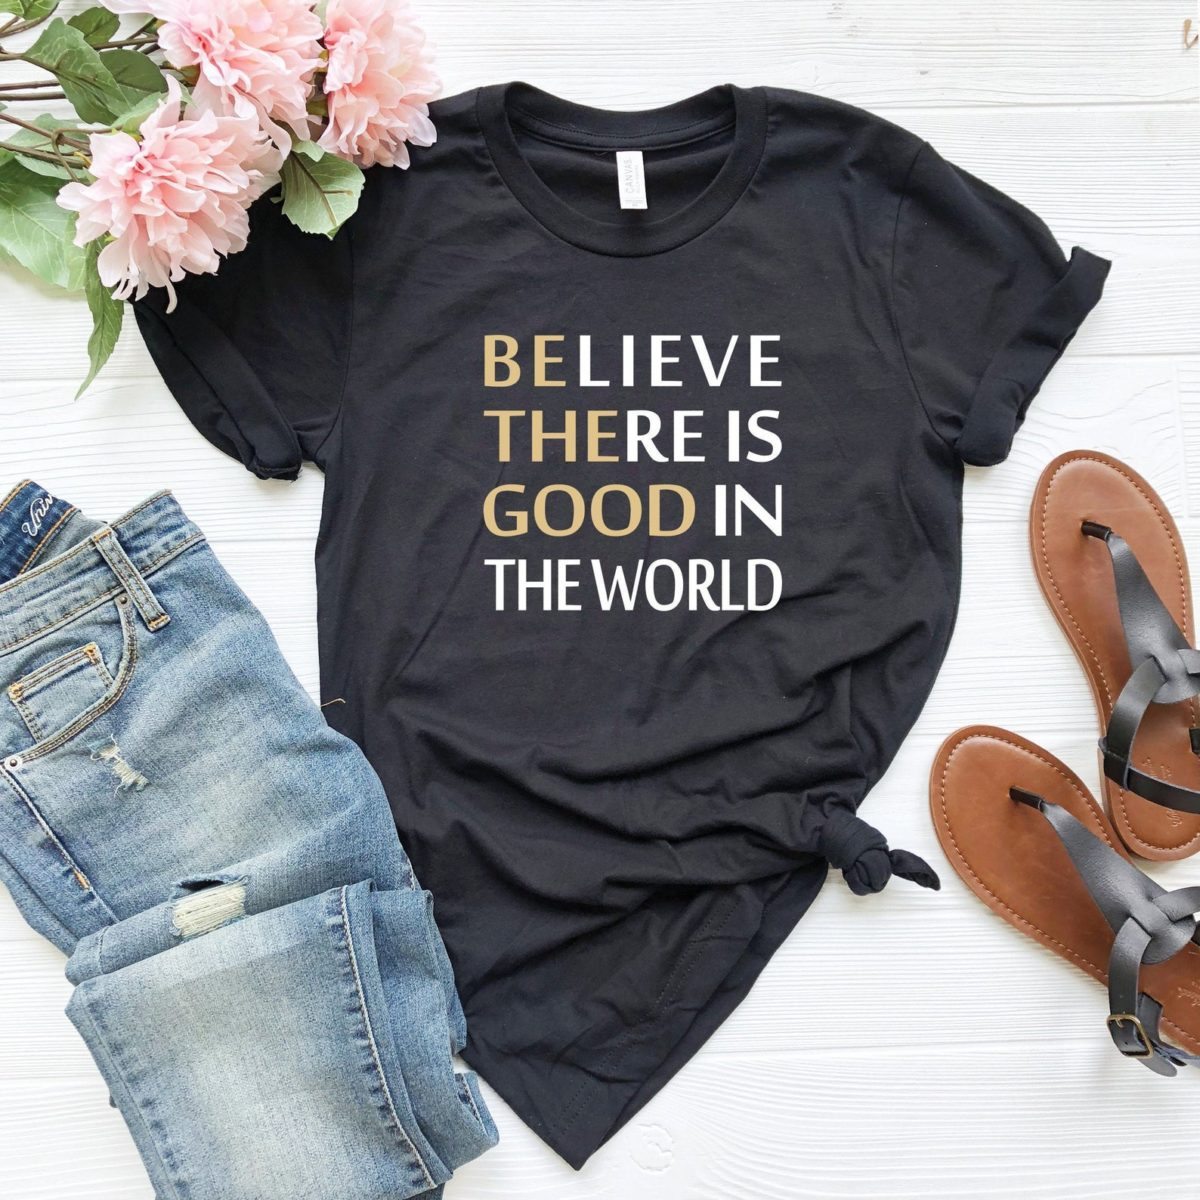 26 awesome etsy t-shirts that send a positive message and make great gifts | parenting questions | mamas uncut il 1588xn.2911378043 efll